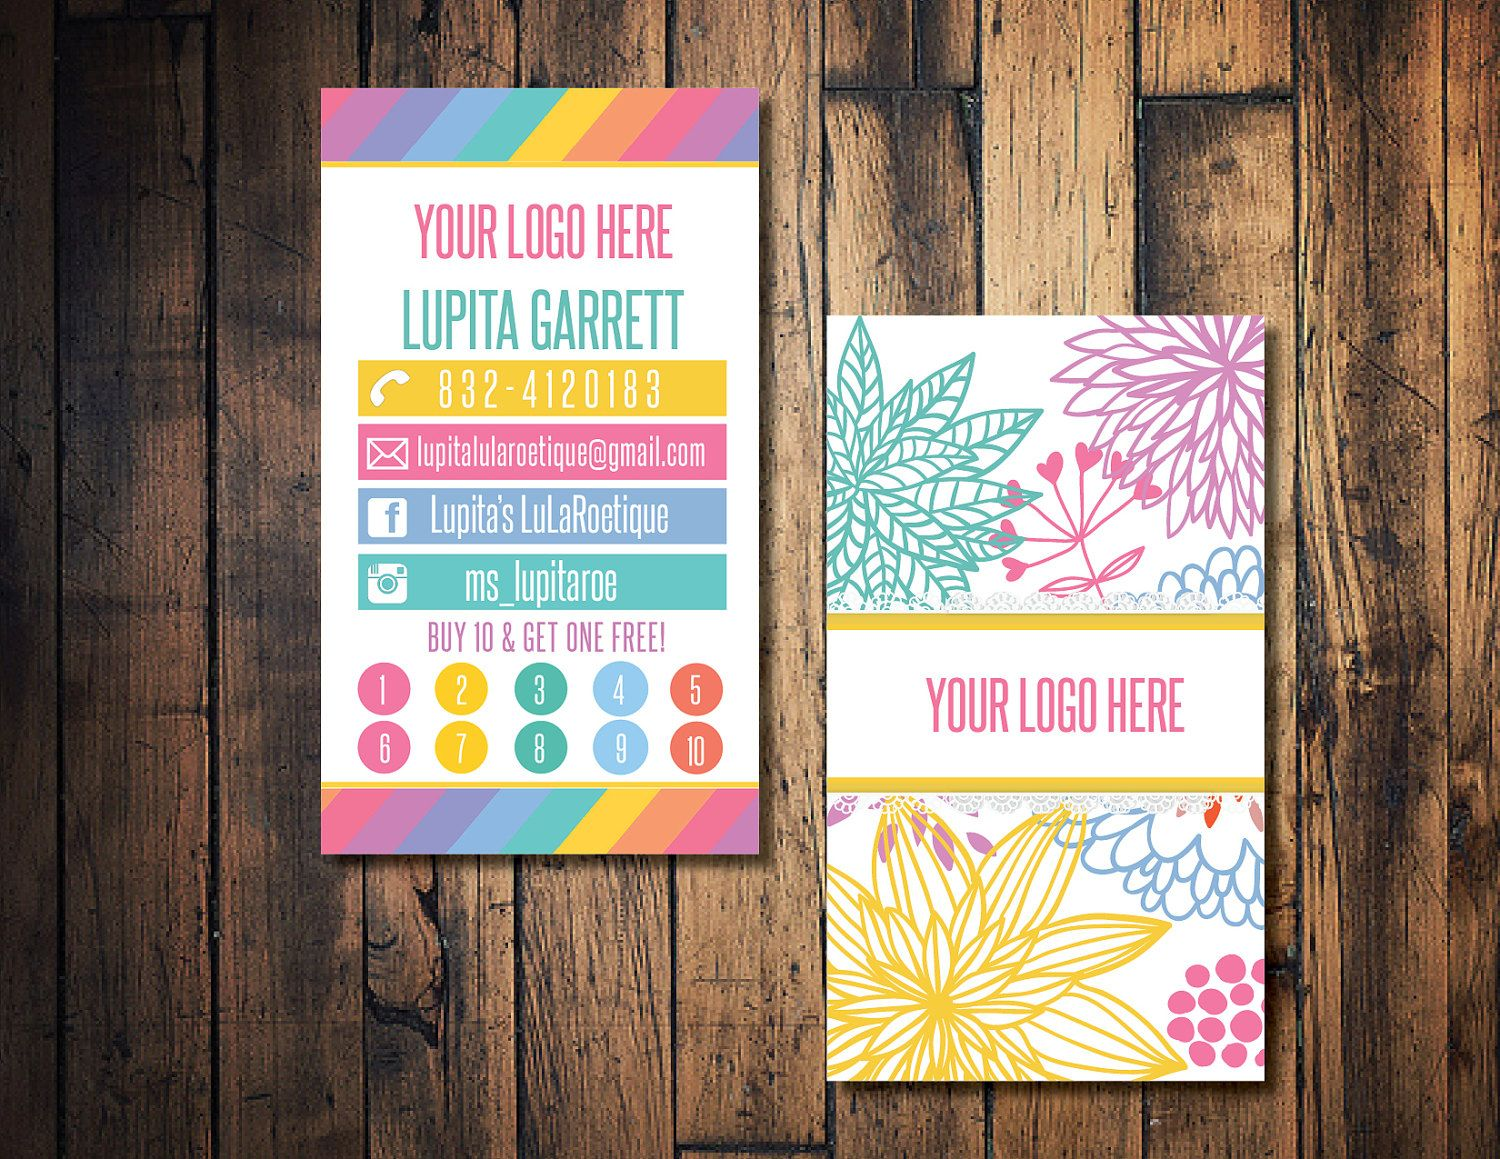 Floral Business Card Punch Home Fashion Buy 10 Get One Free By TheWrightIn